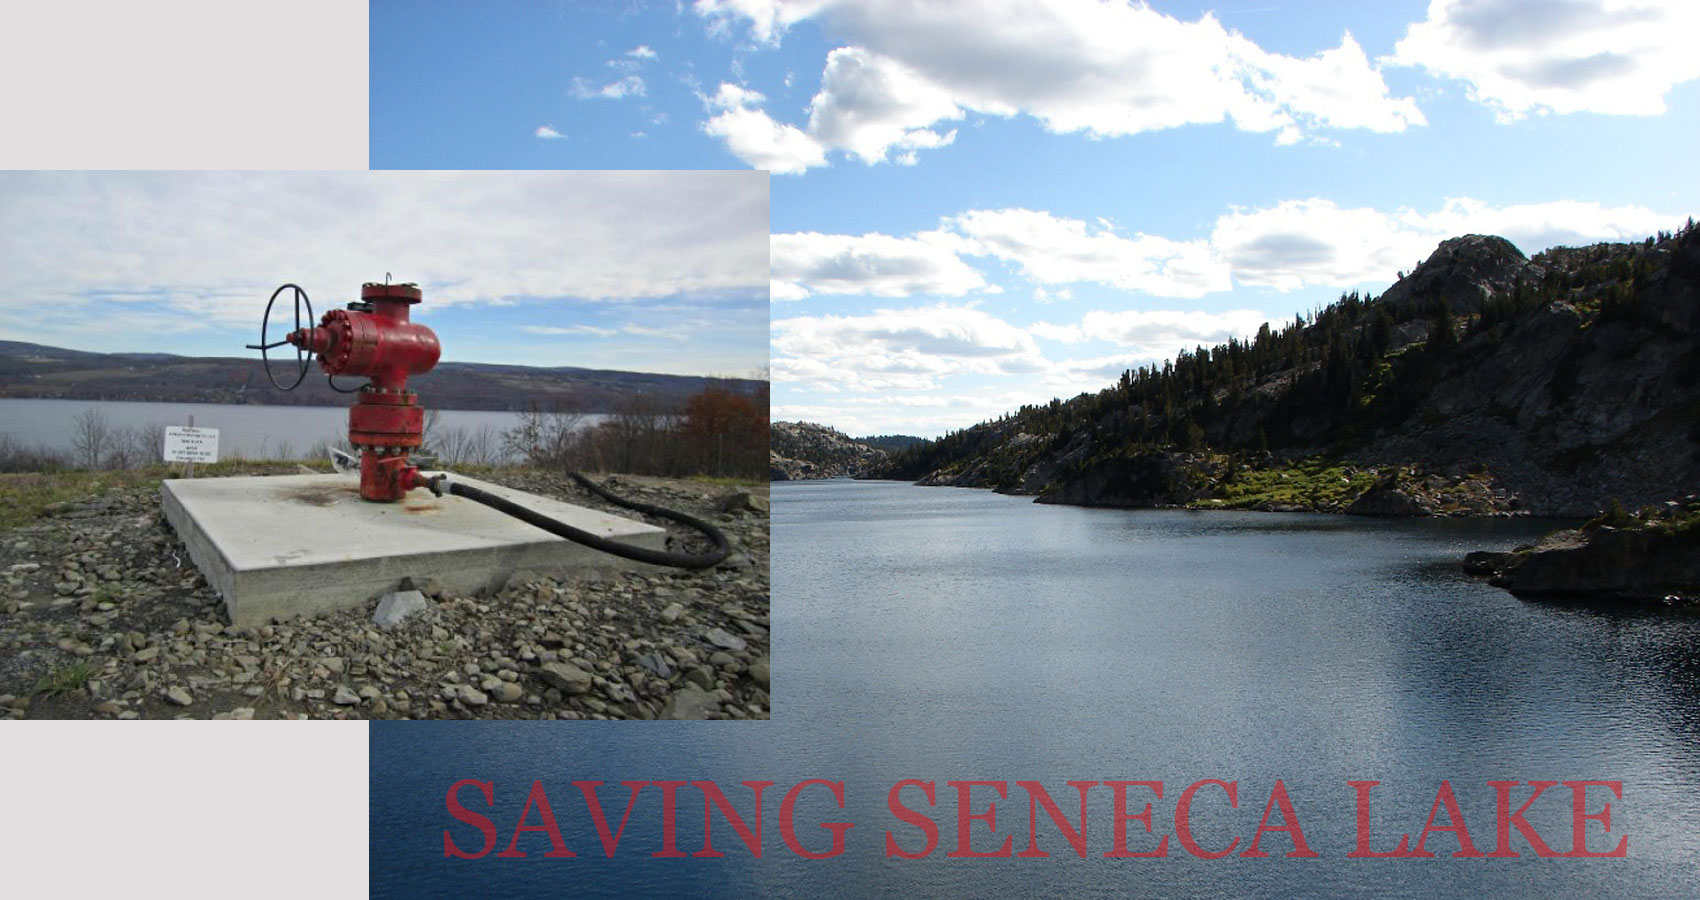 Saving Seneca Lake at Spillwords.com